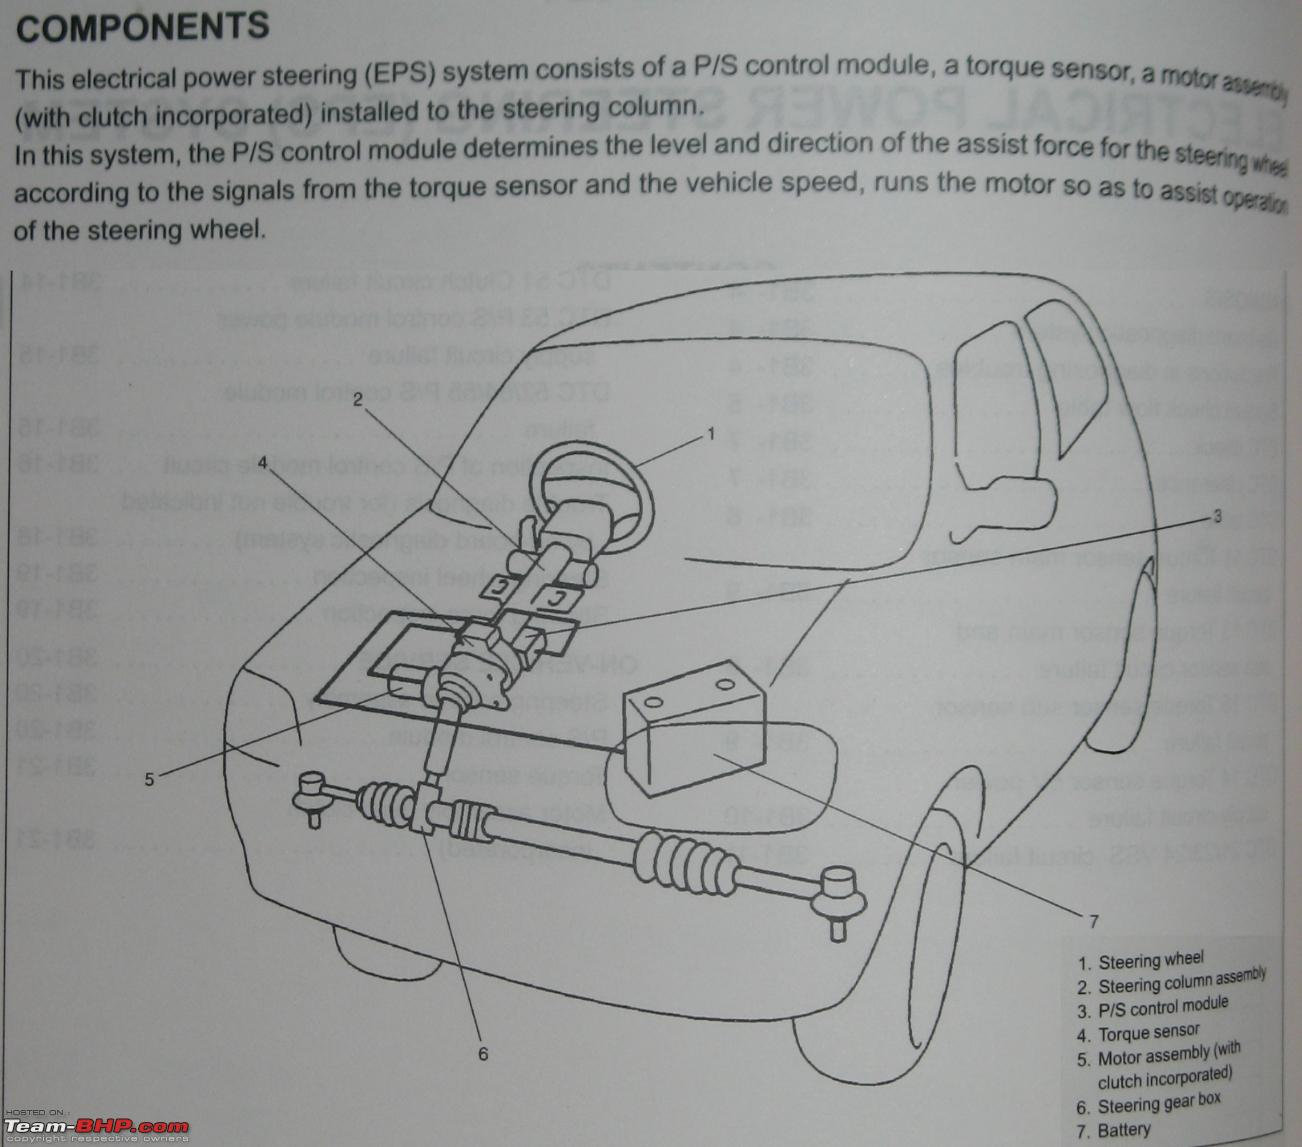 905423d1332312417 how does electric power steering work alto_eps_0 how does electric power steering work? team bhp maruti alto wiring diagram pdf at alyssarenee.co